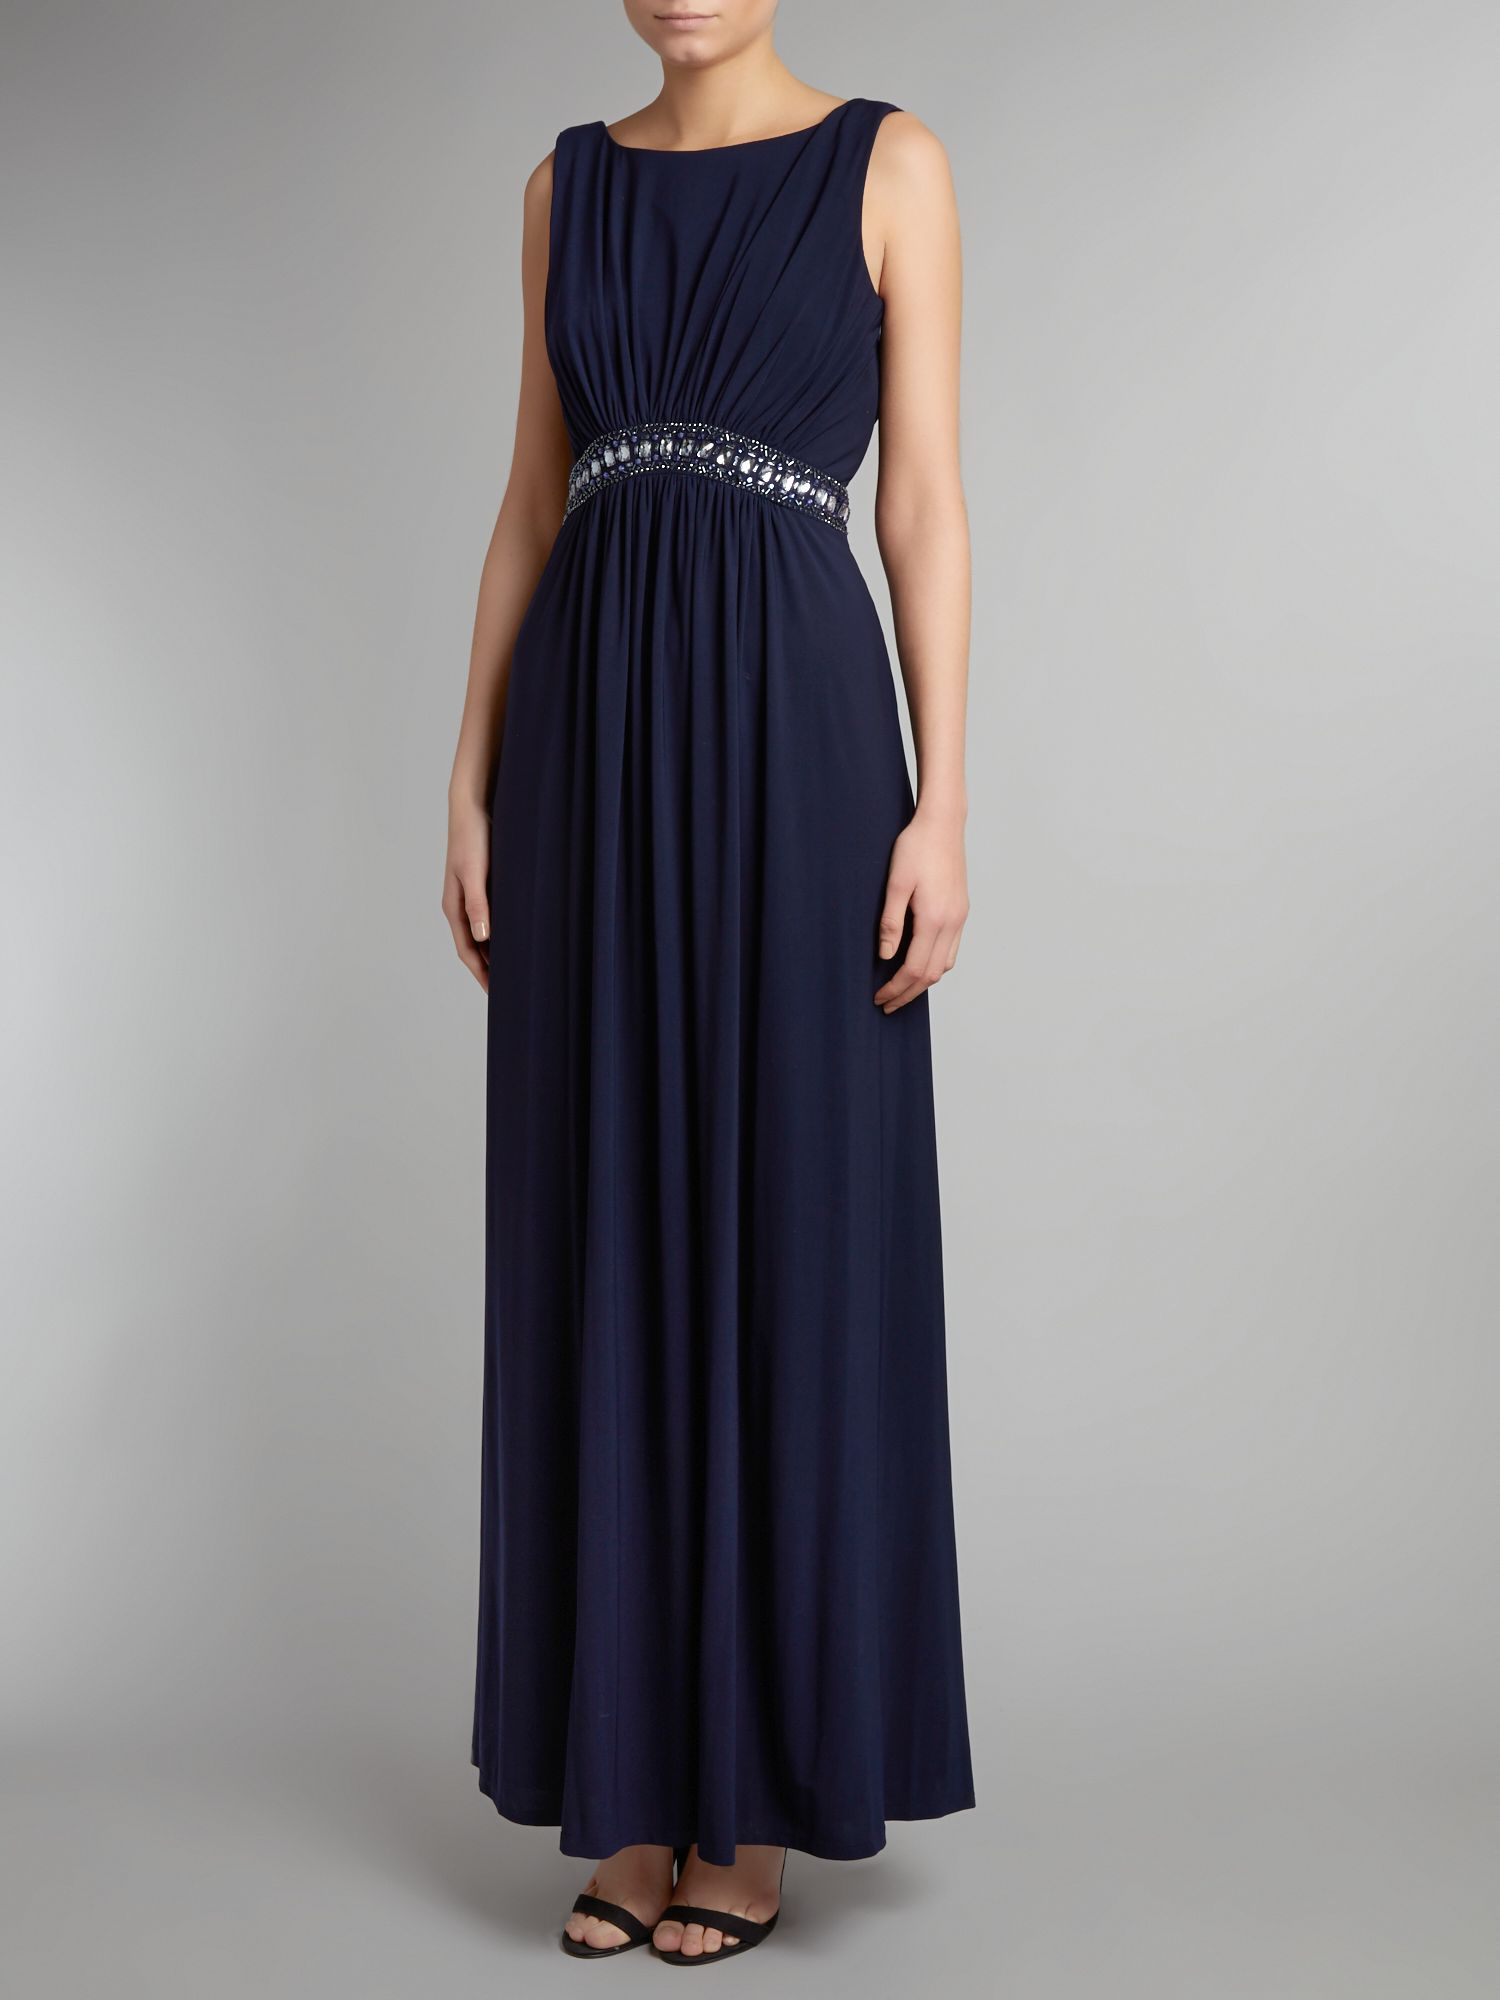 Diamonte waist drape back dress